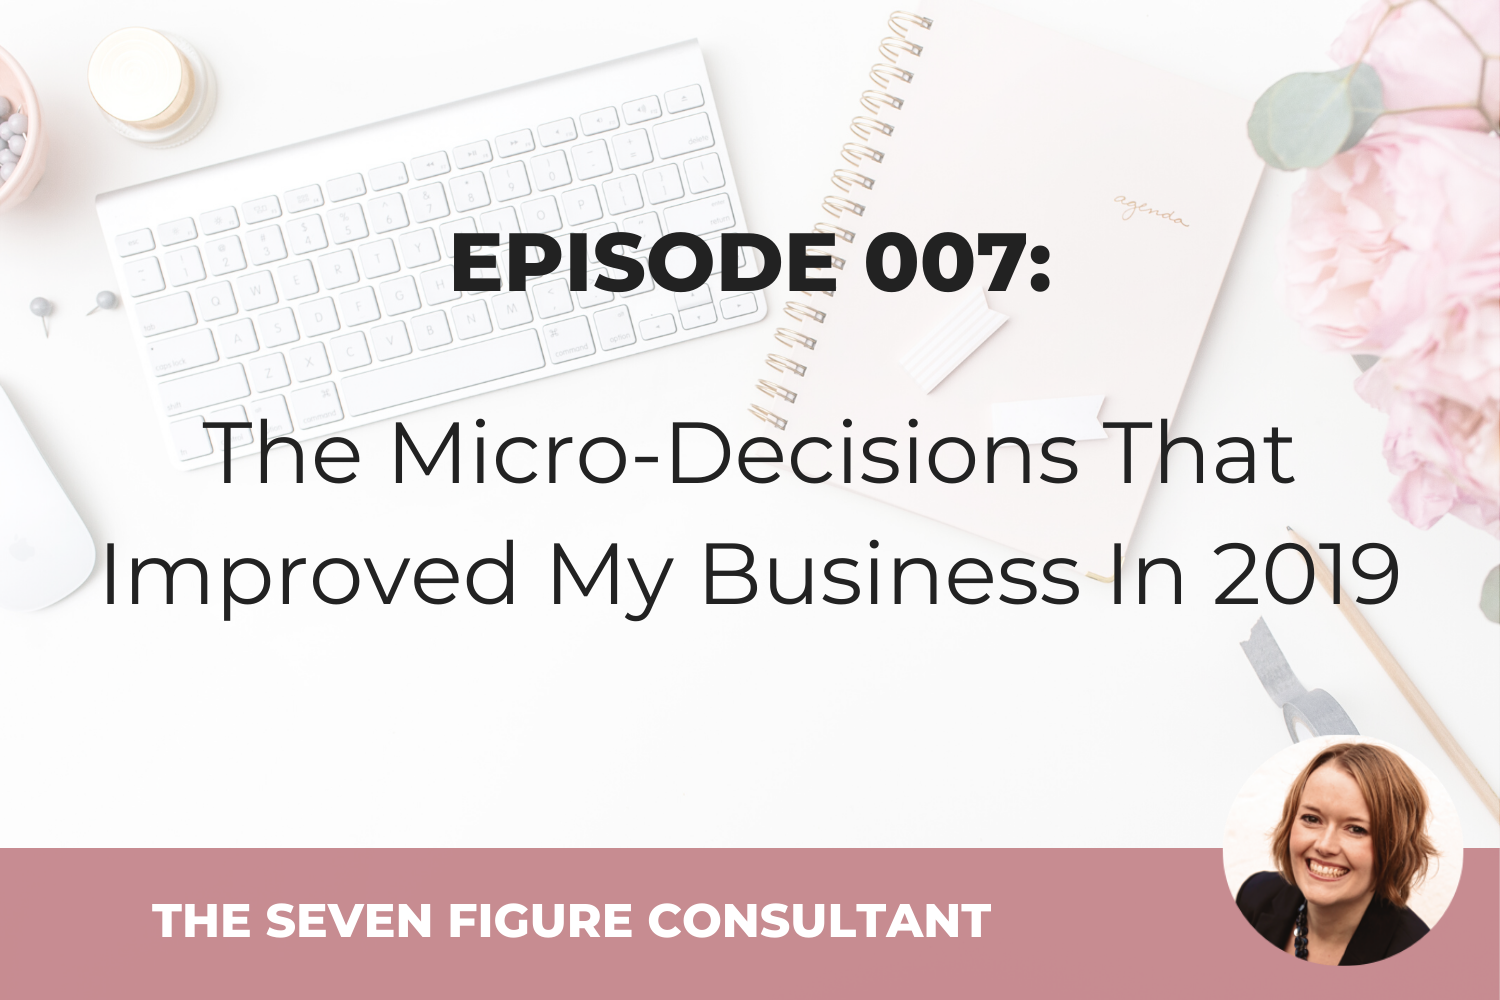 Episode 007: The Micro-Decisions That Improved My Business In 2019